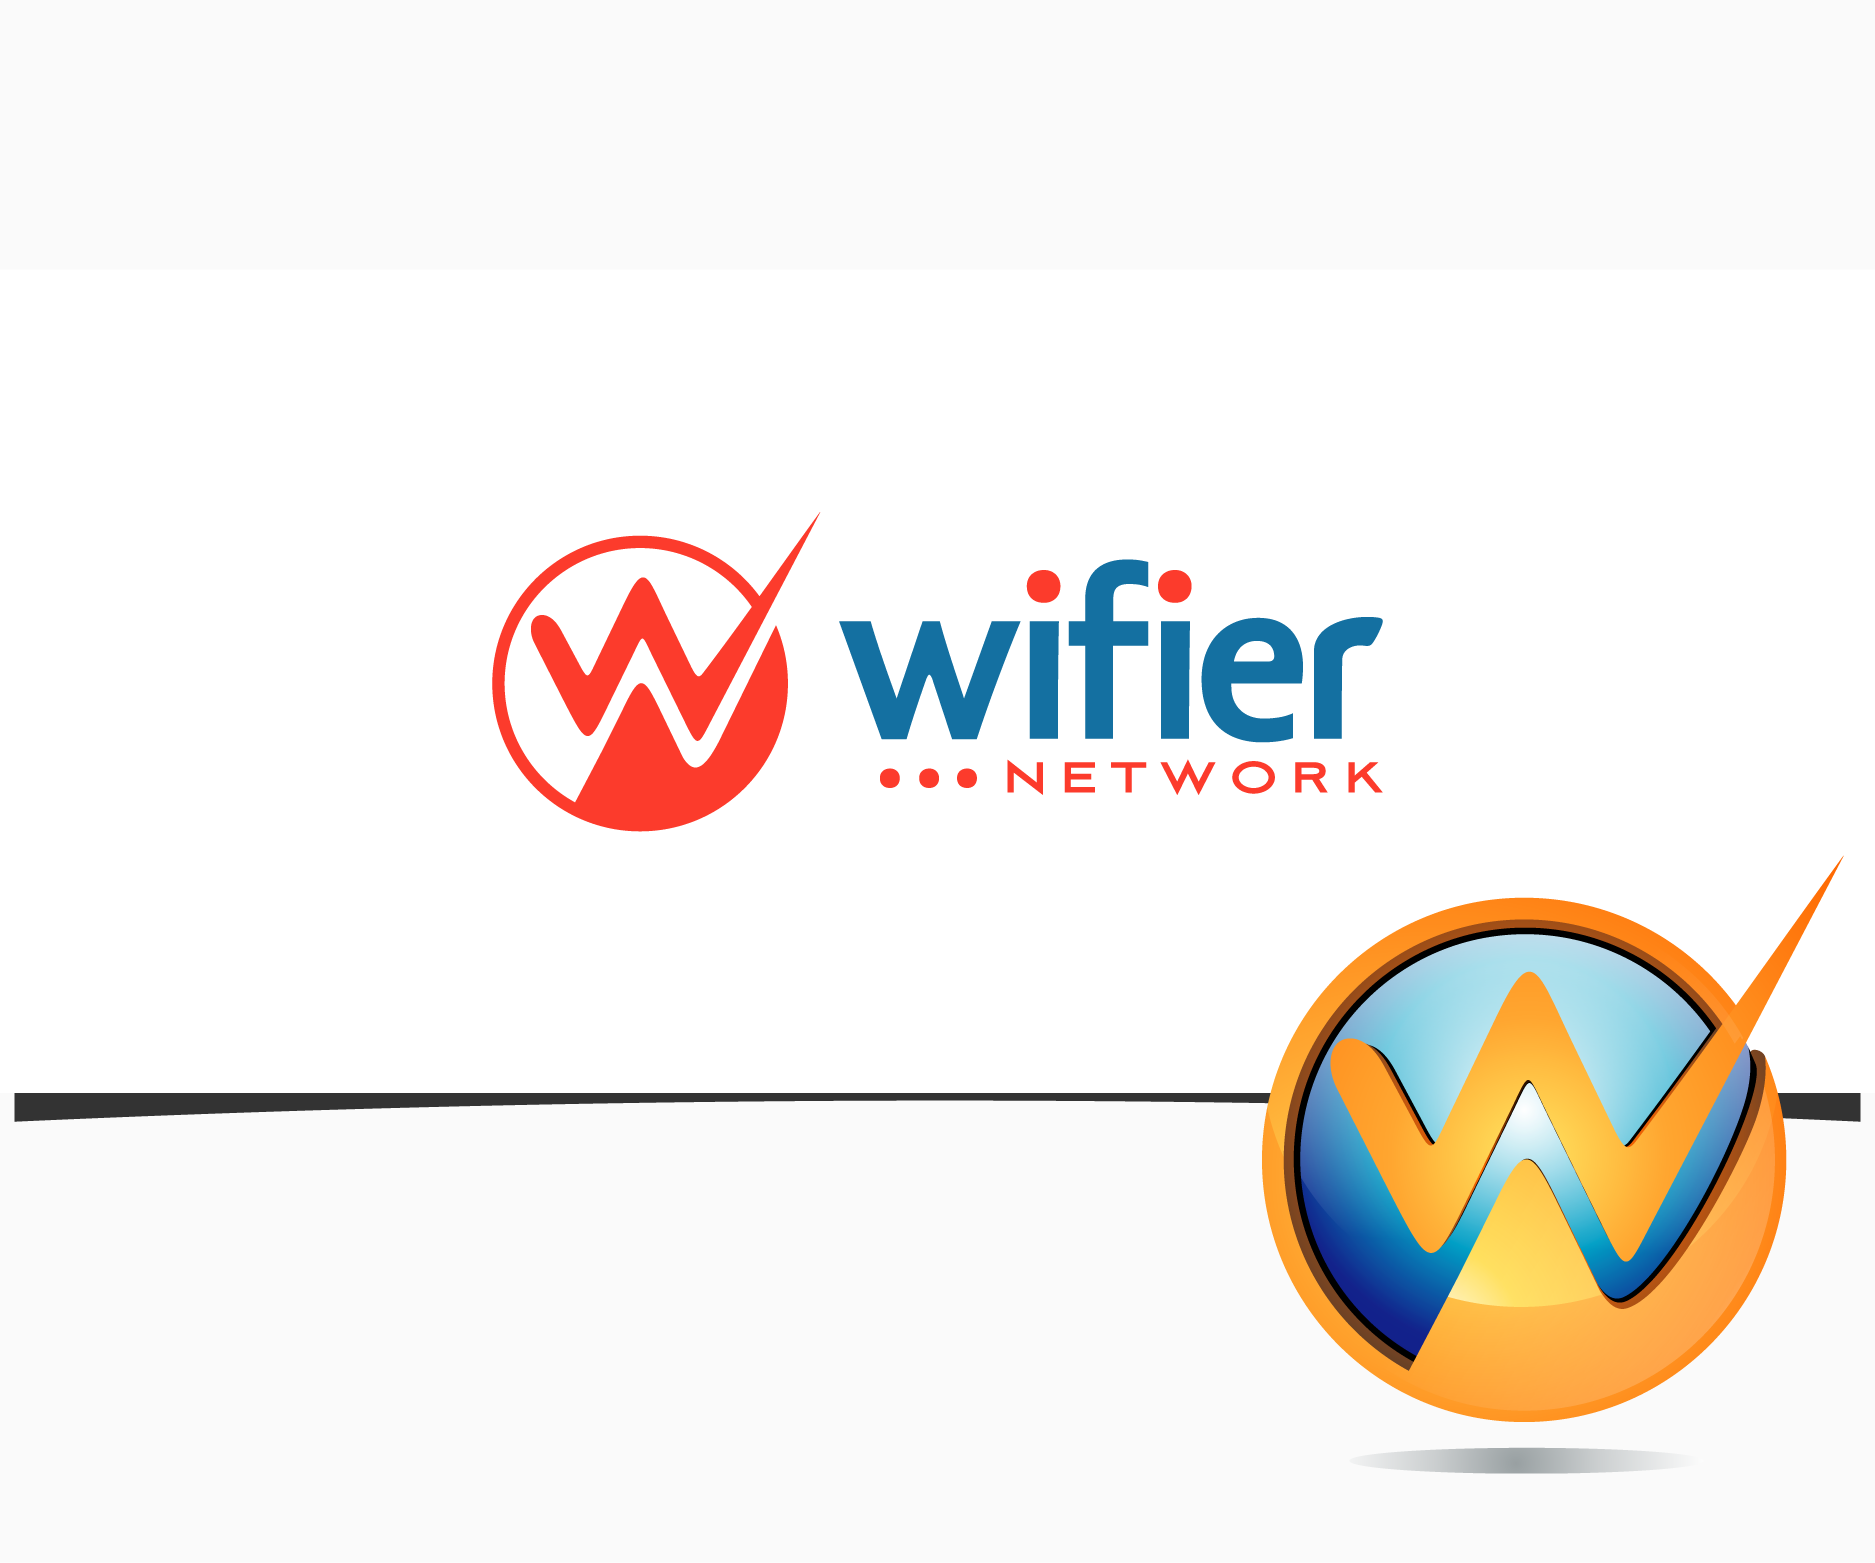 Logo Design by graphicleaf - Entry No. 85 in the Logo Design Contest New Logo Design for Wifier Network.